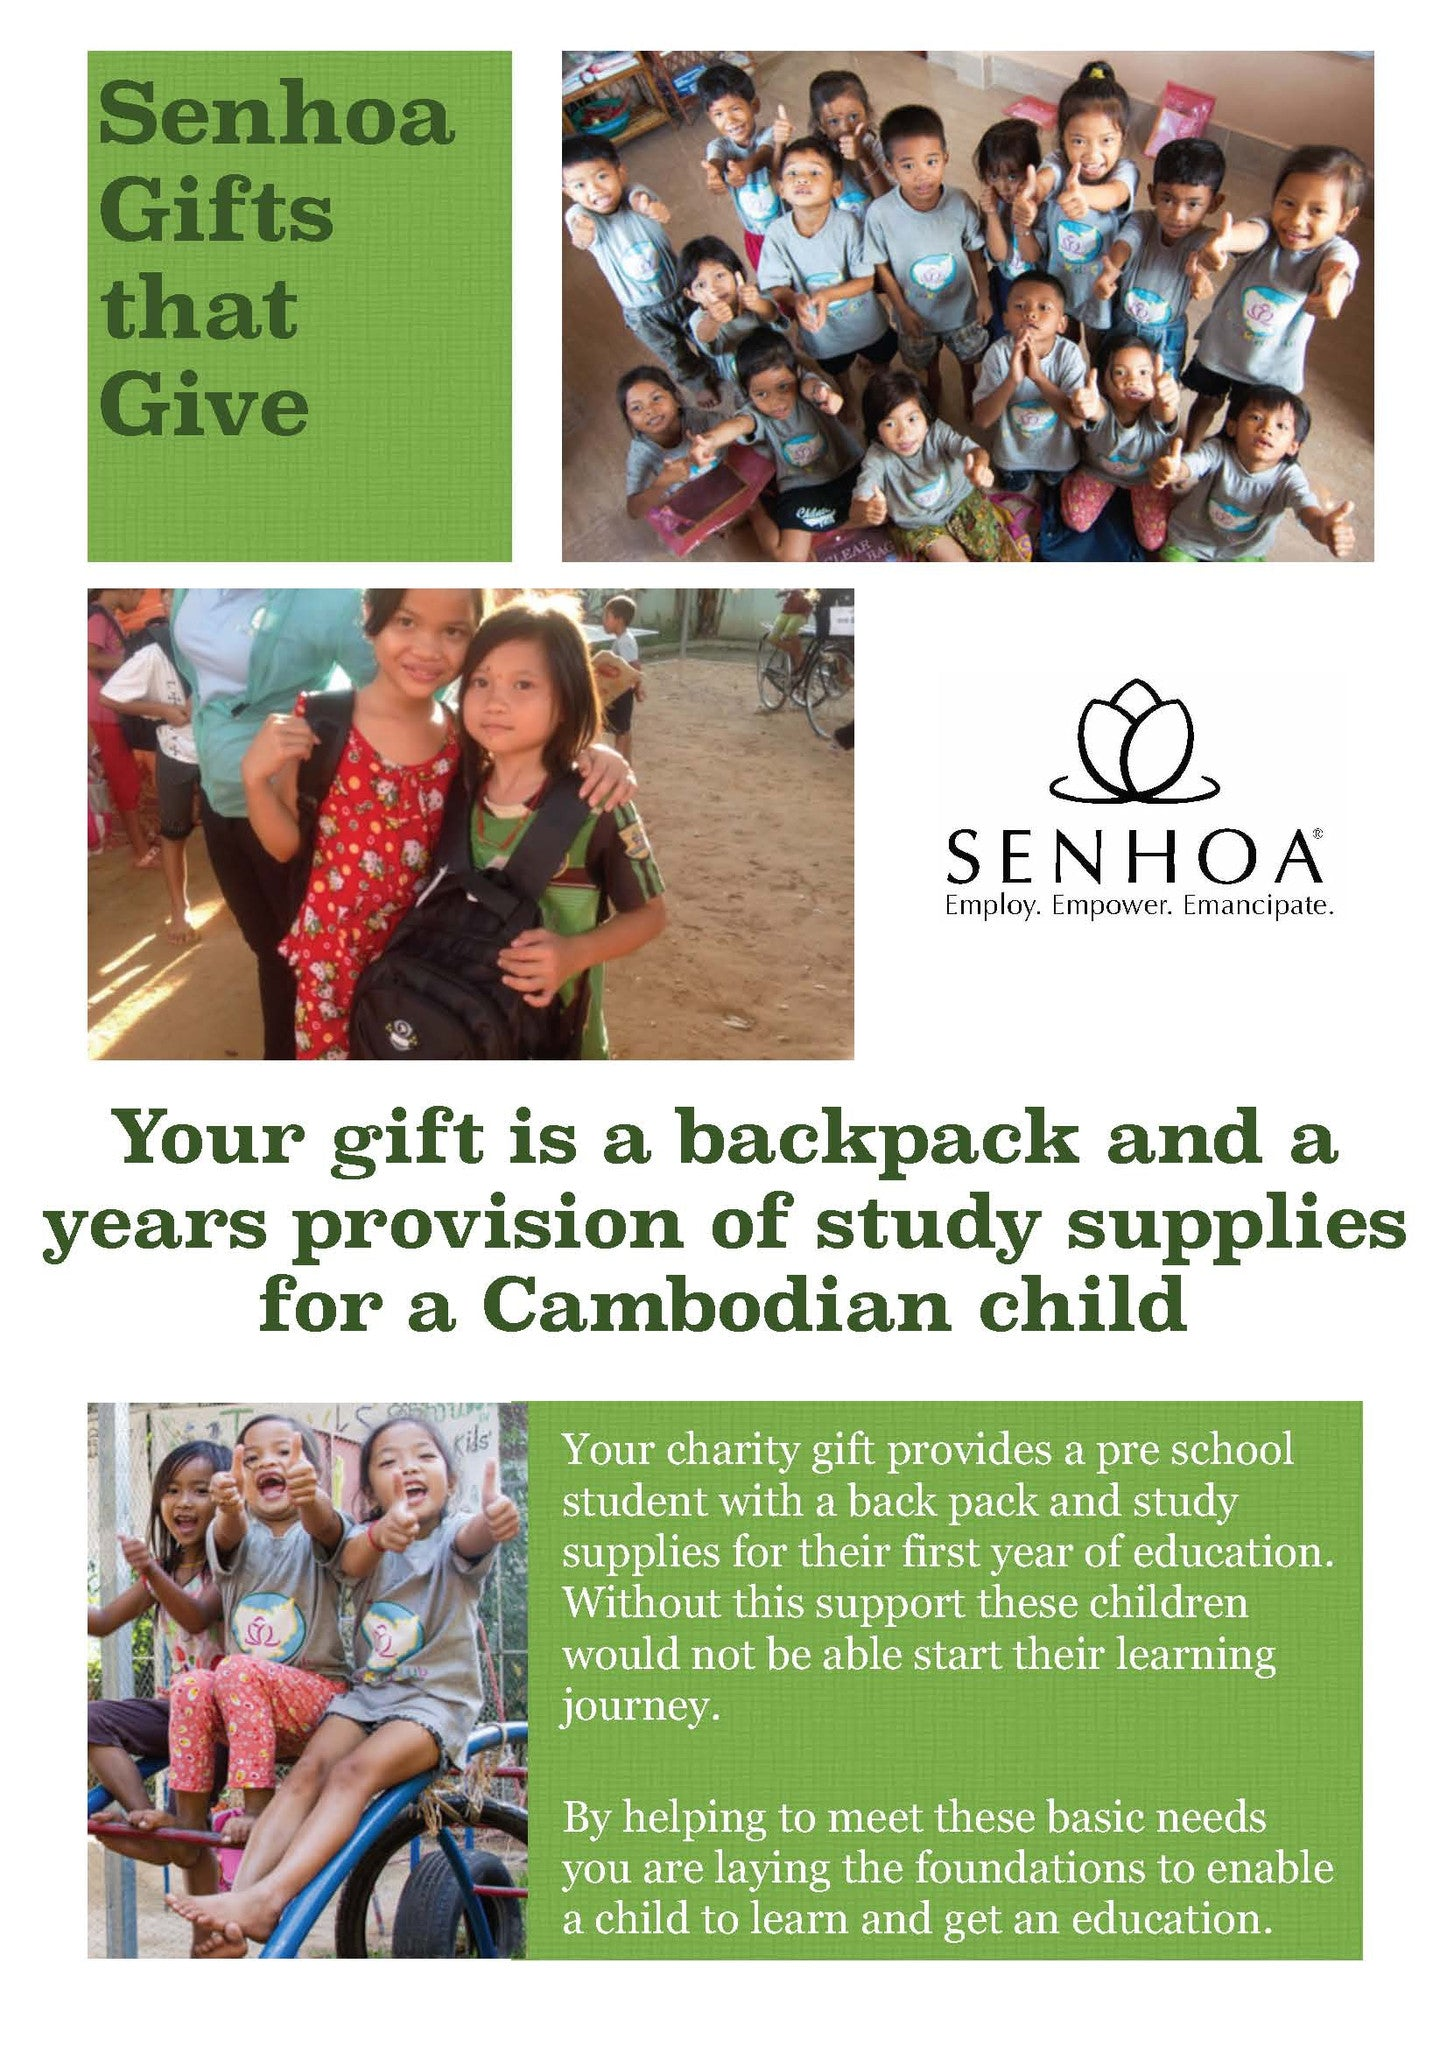 Senhoa Gifts that Give: a back pack and a year's provision of study supplies for one child